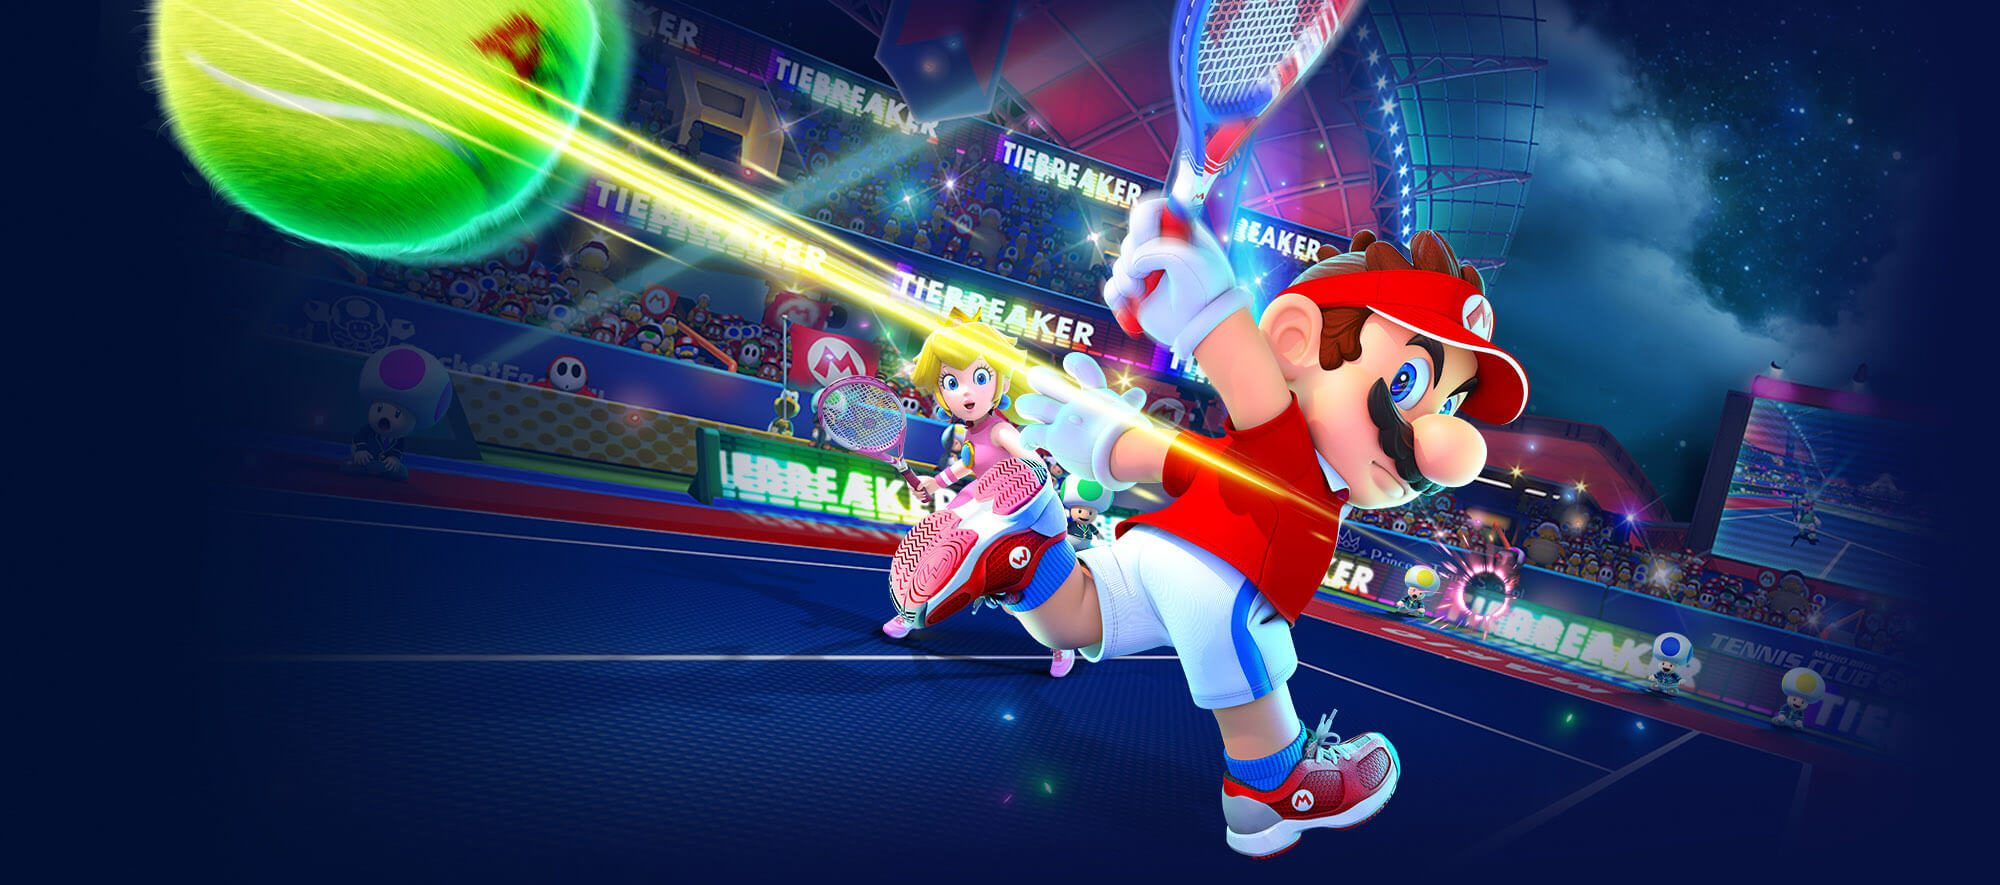 Mario Tennis Aces Review: Amazing Multiplayer Redeems Tyrannically Poor Execution